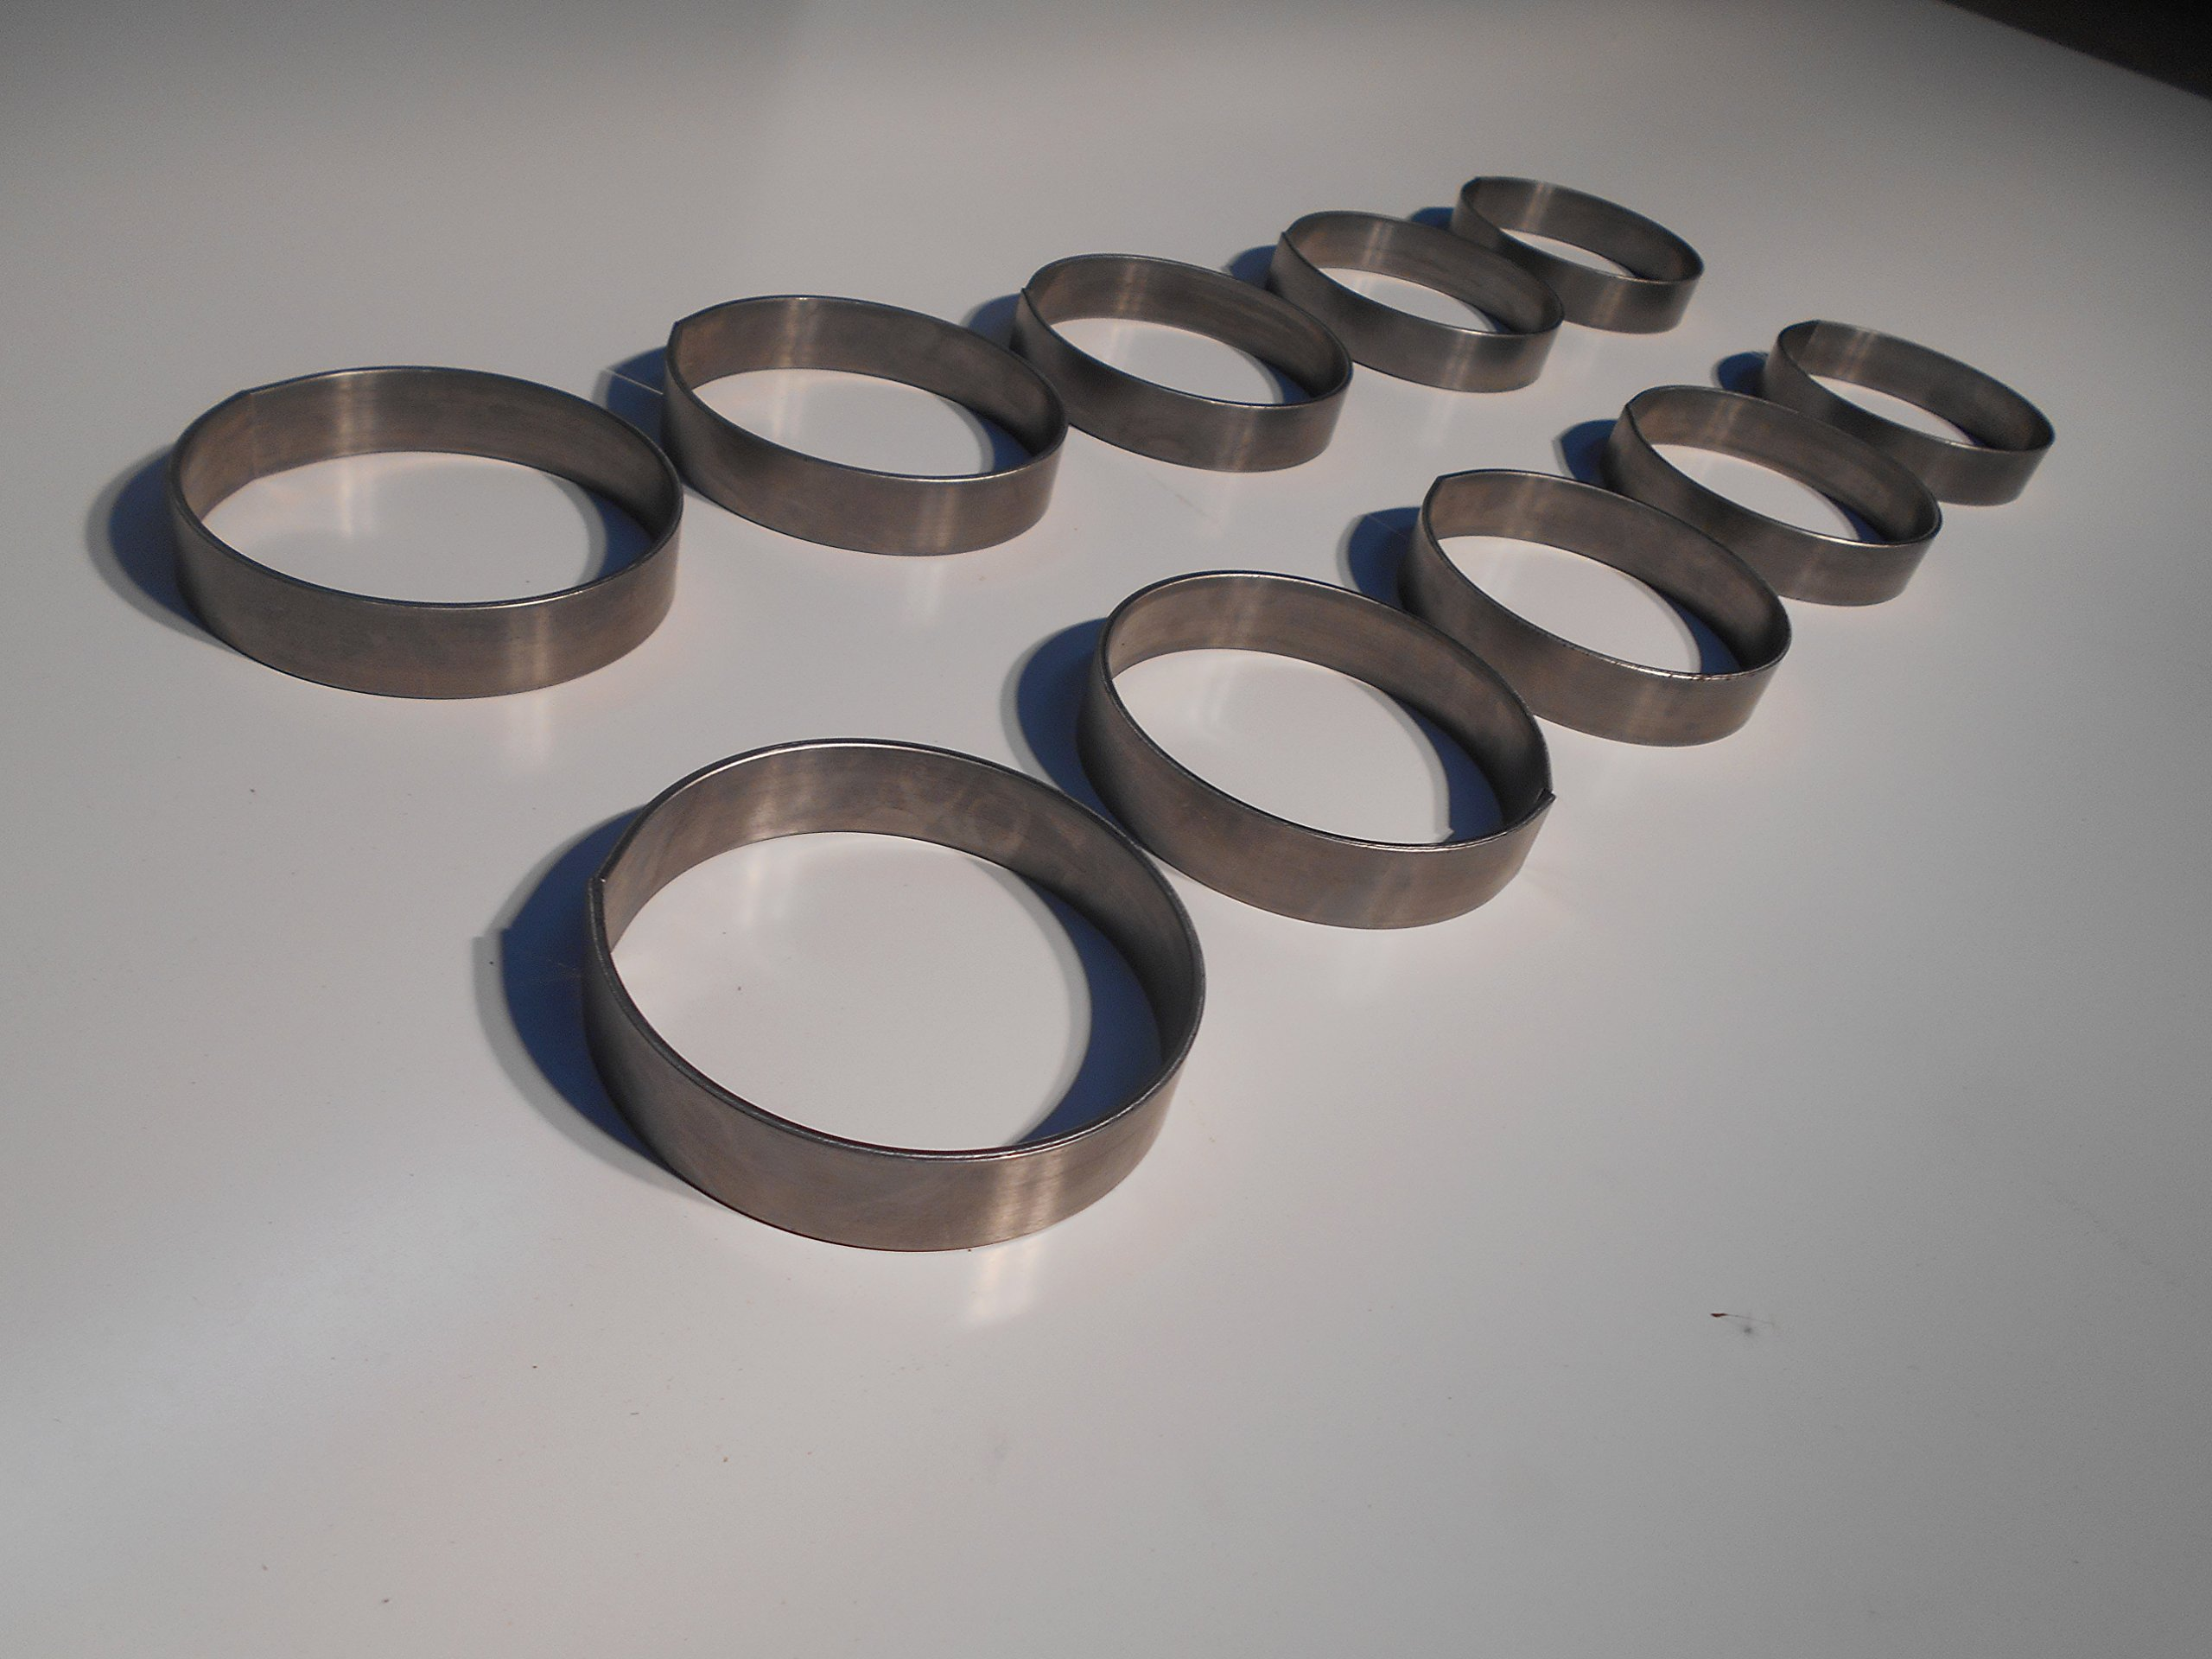 Welded Steel Rings 4.5'' ID x 1'' wide 4.75'' OD Pack of 10- Made in USA